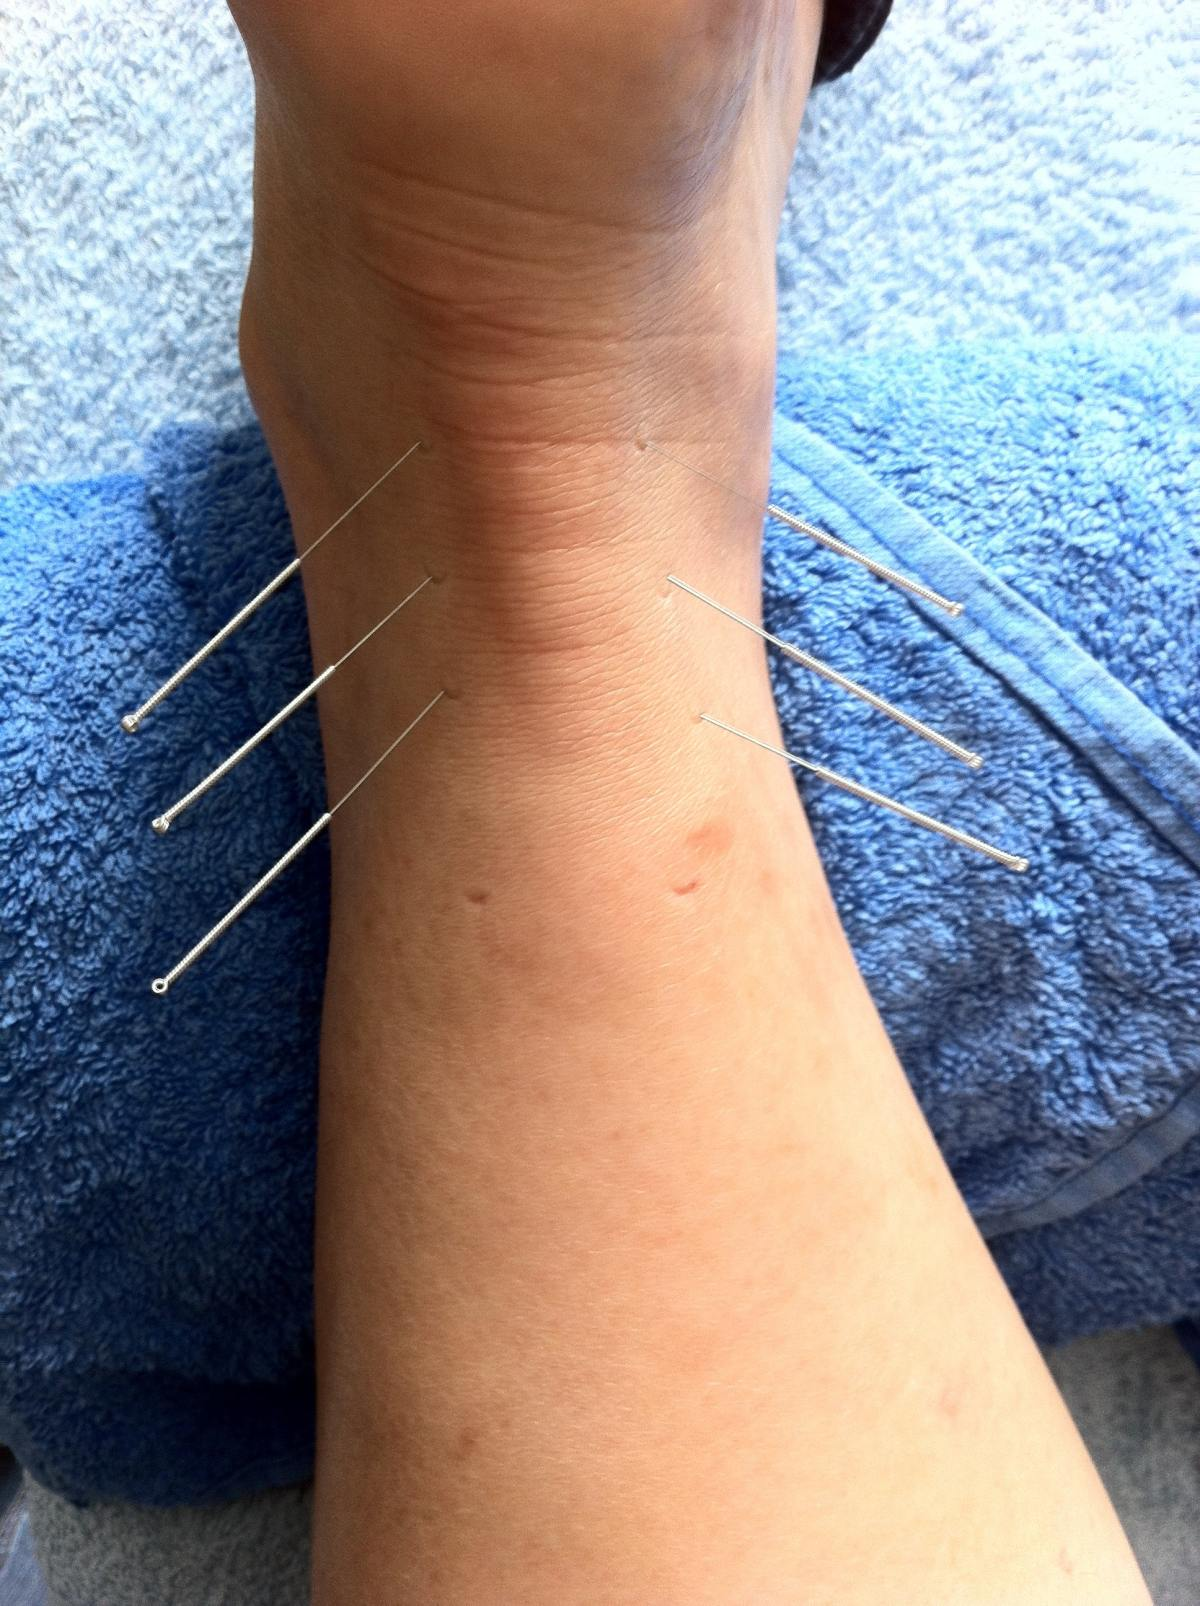 acupuncture in guildford